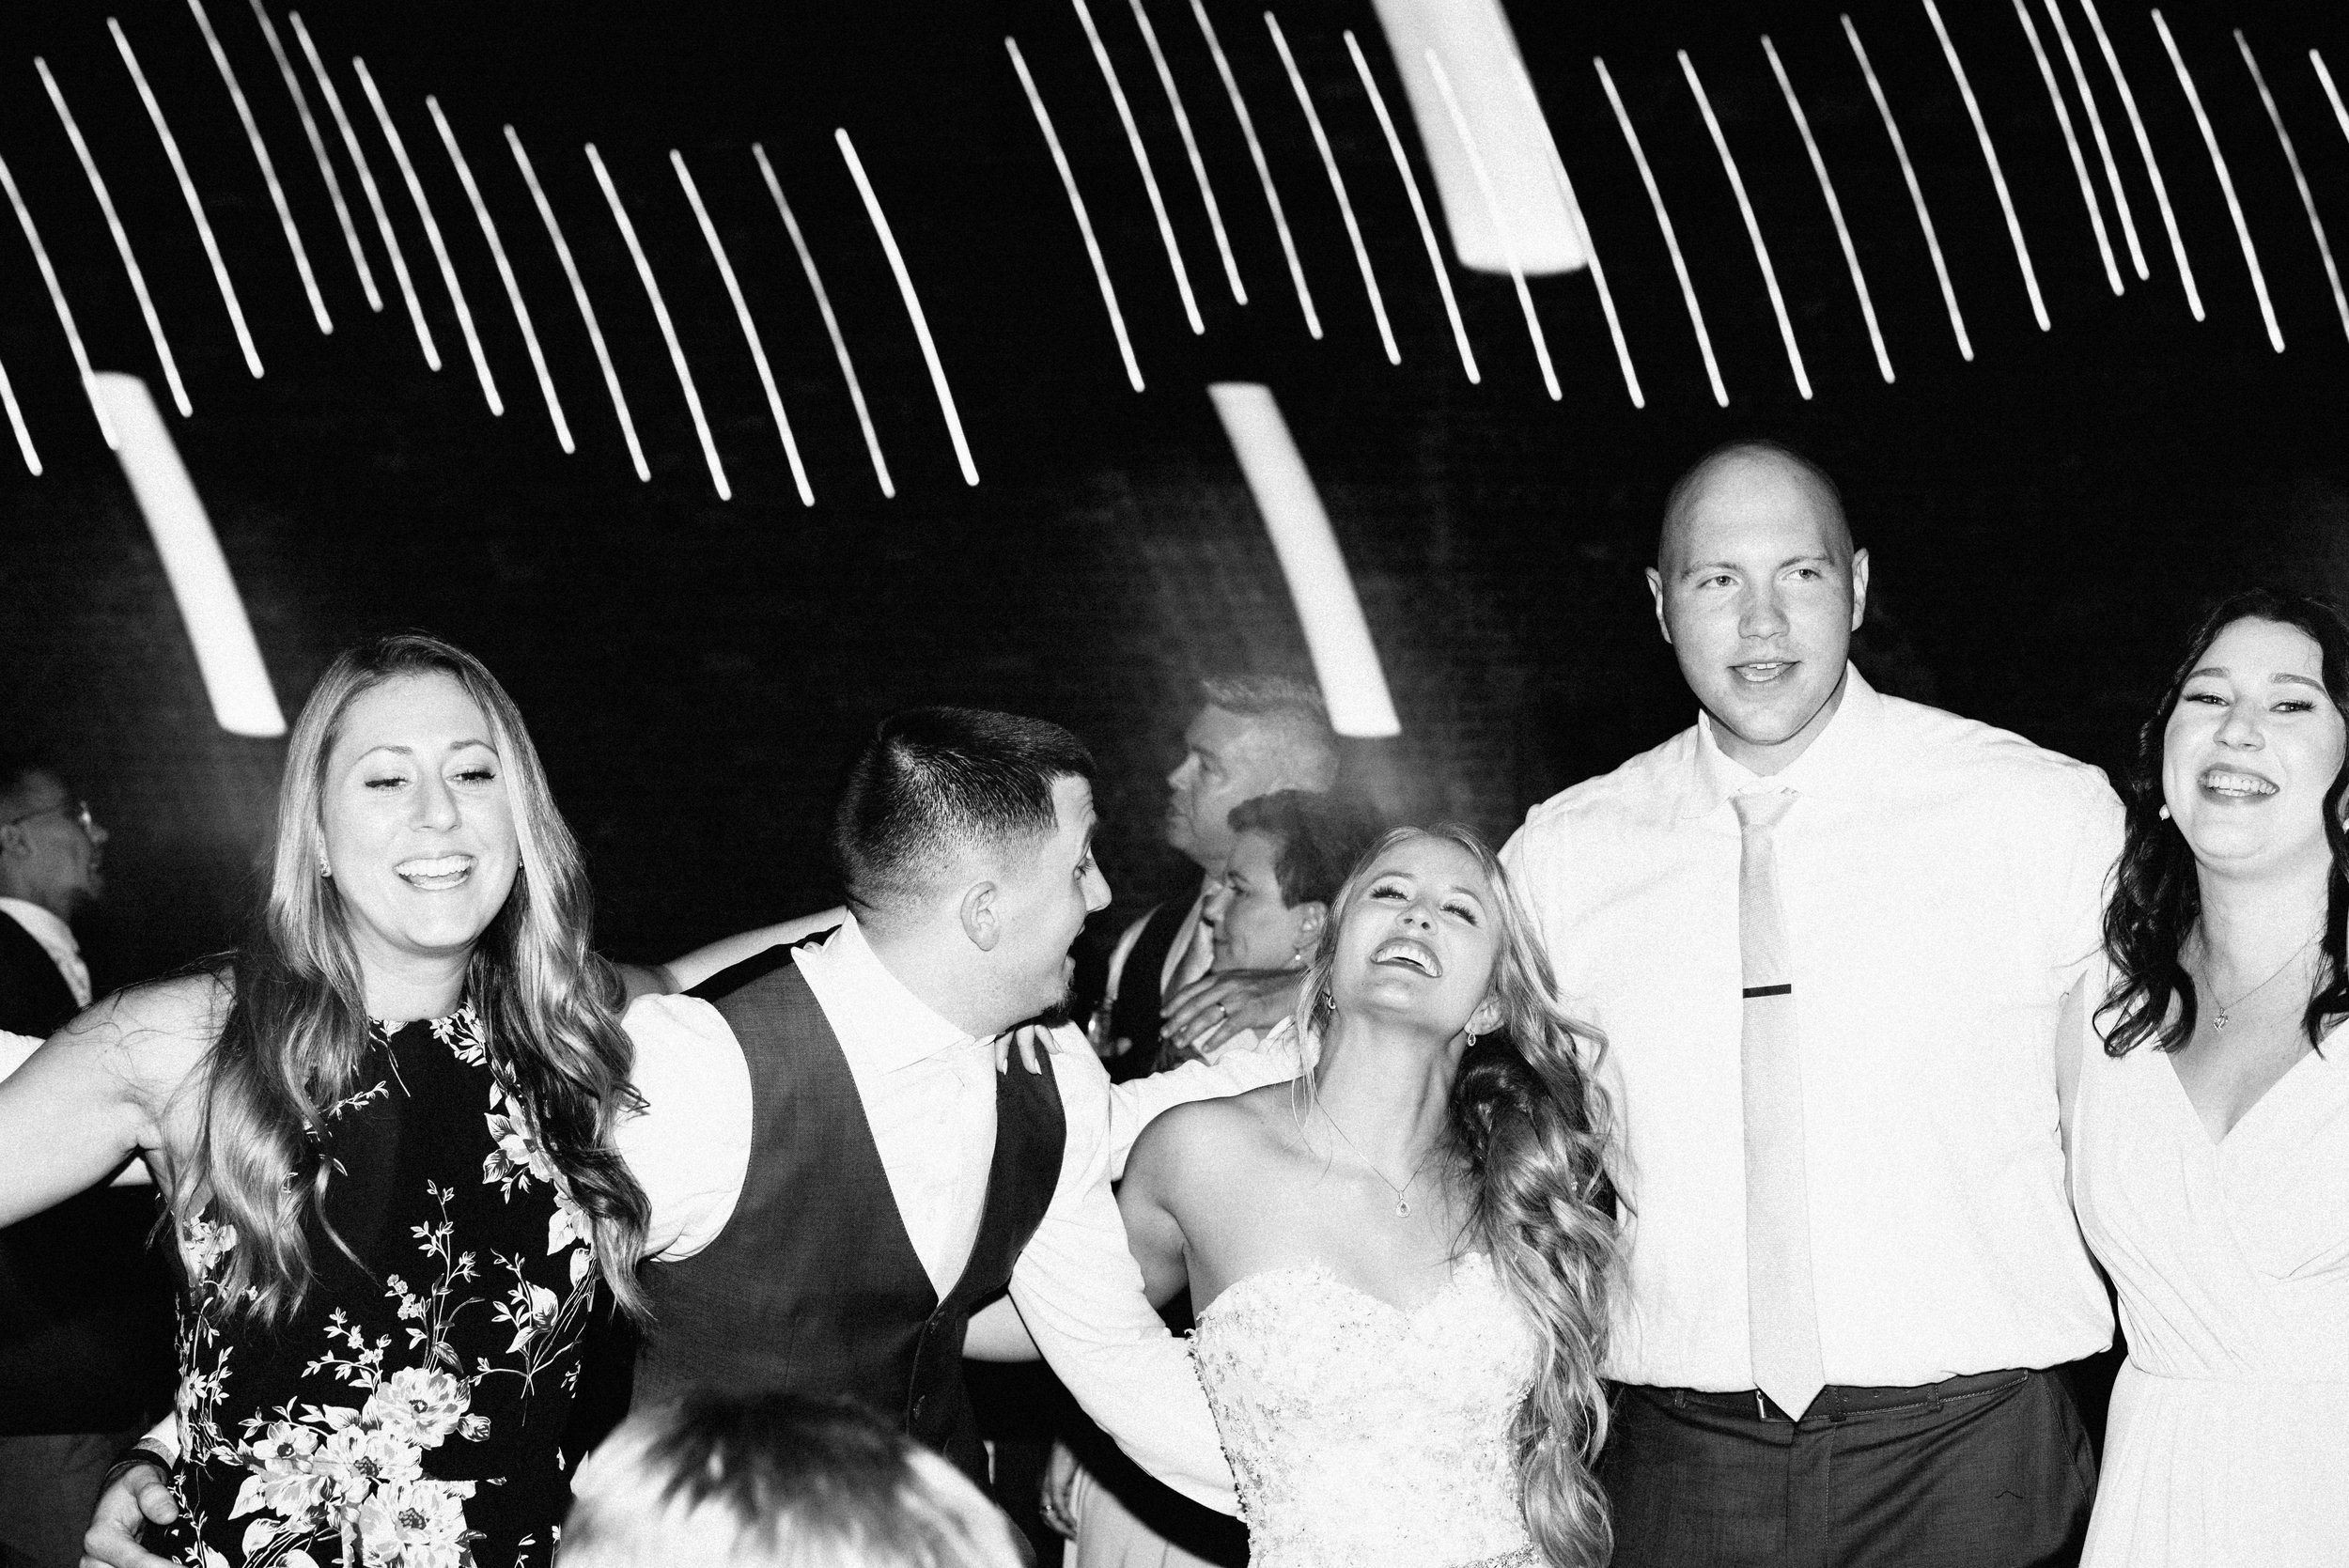 bride and groom dancing with friend's during their wedding reception